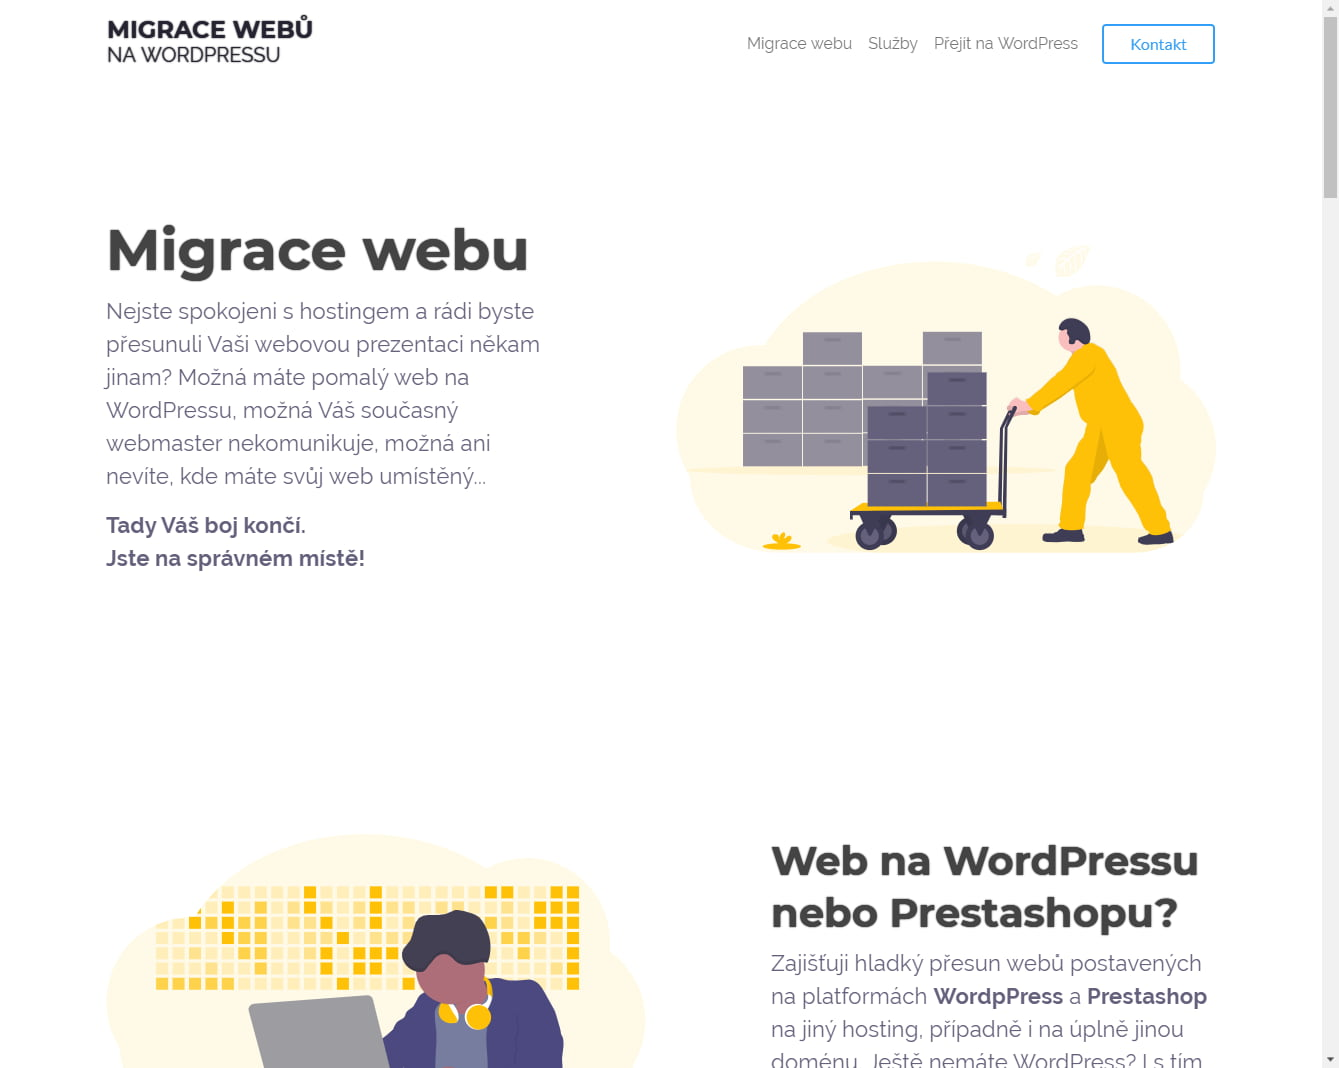 Microsites for migrating websites on WordPress and services